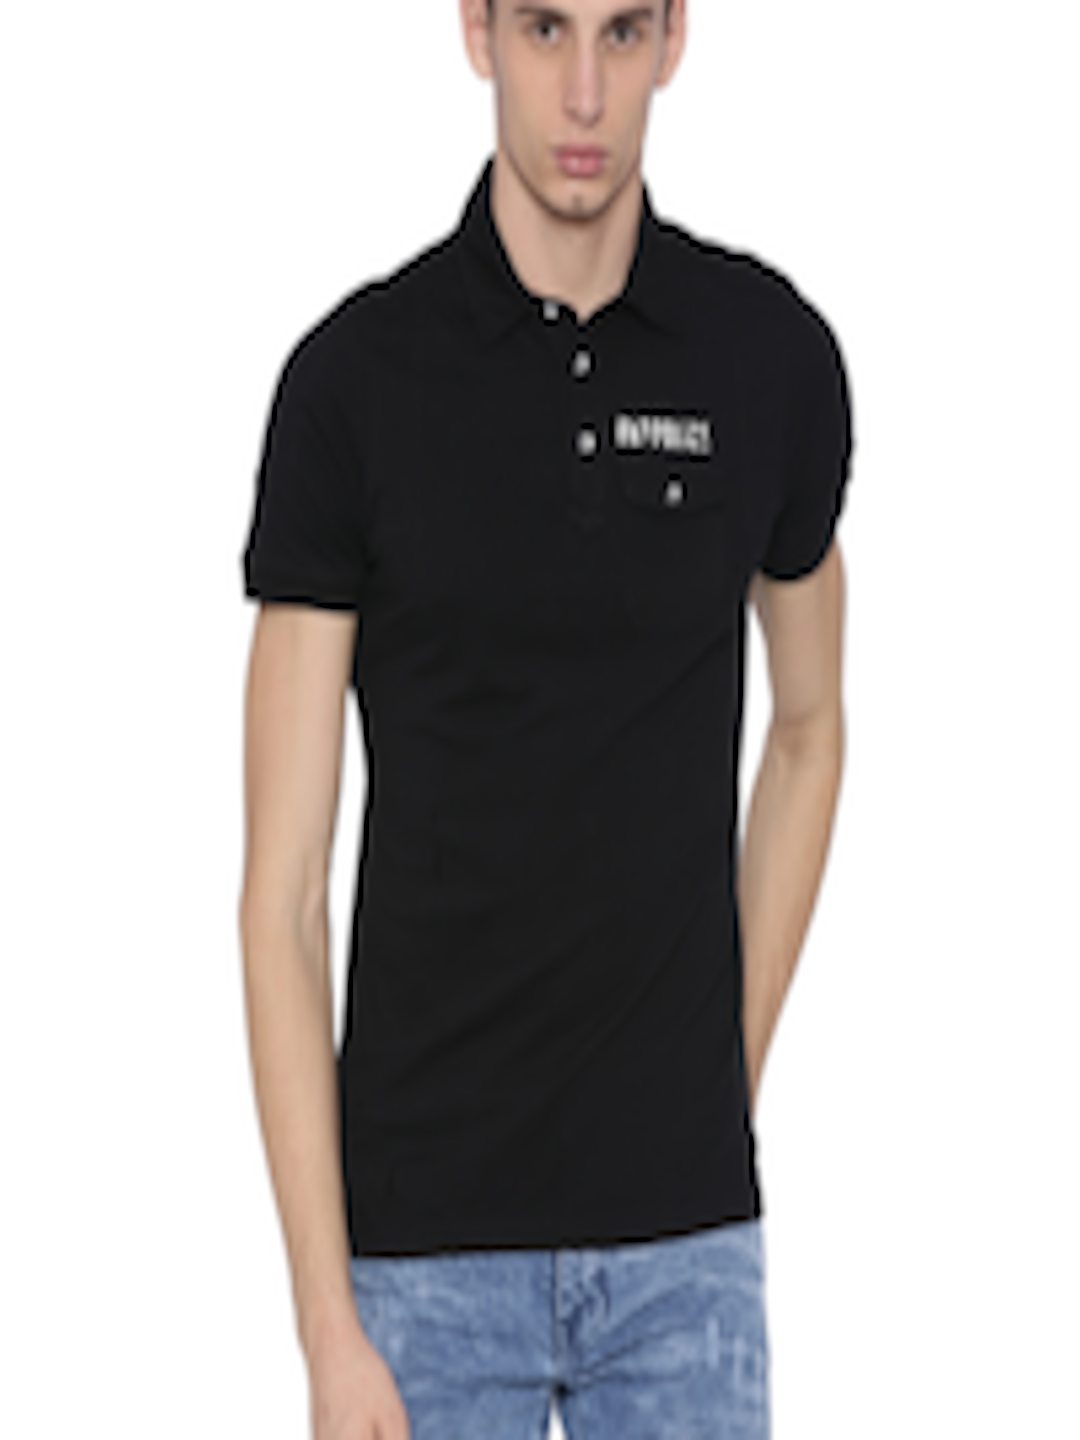 Mens T Shirt Crew Neck Cotton Short Sleeve Branded 883 Police T-Shirt Polo